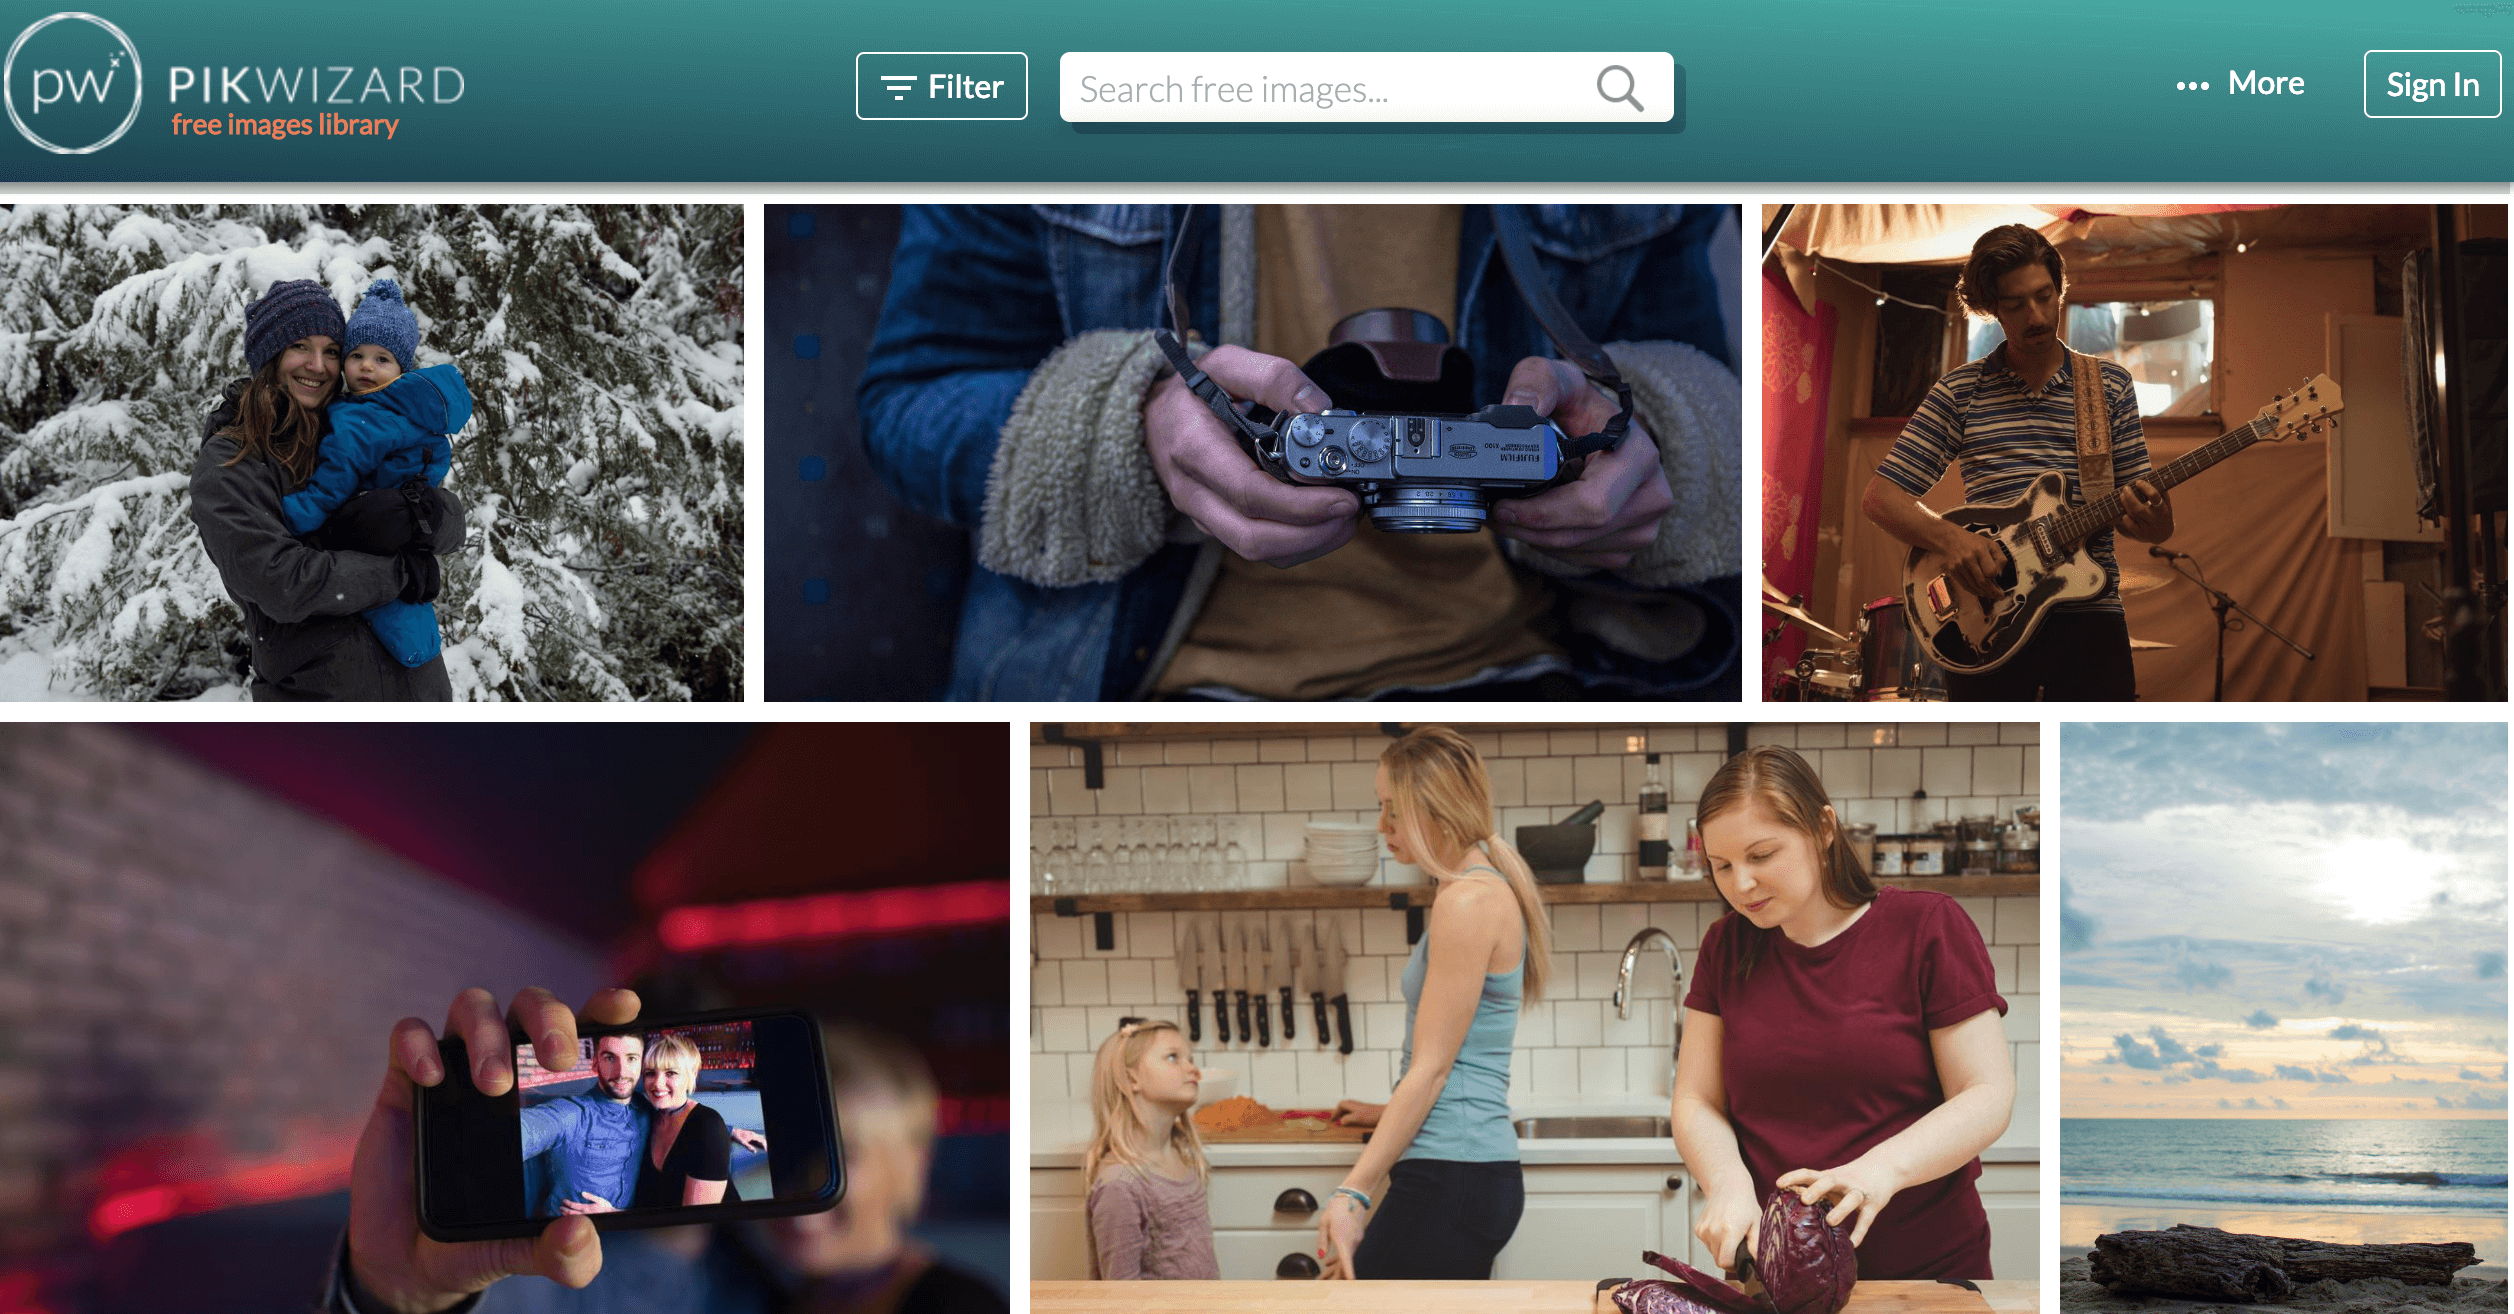 41 Places to Find Free Images Online That You Will Actually Want to Use